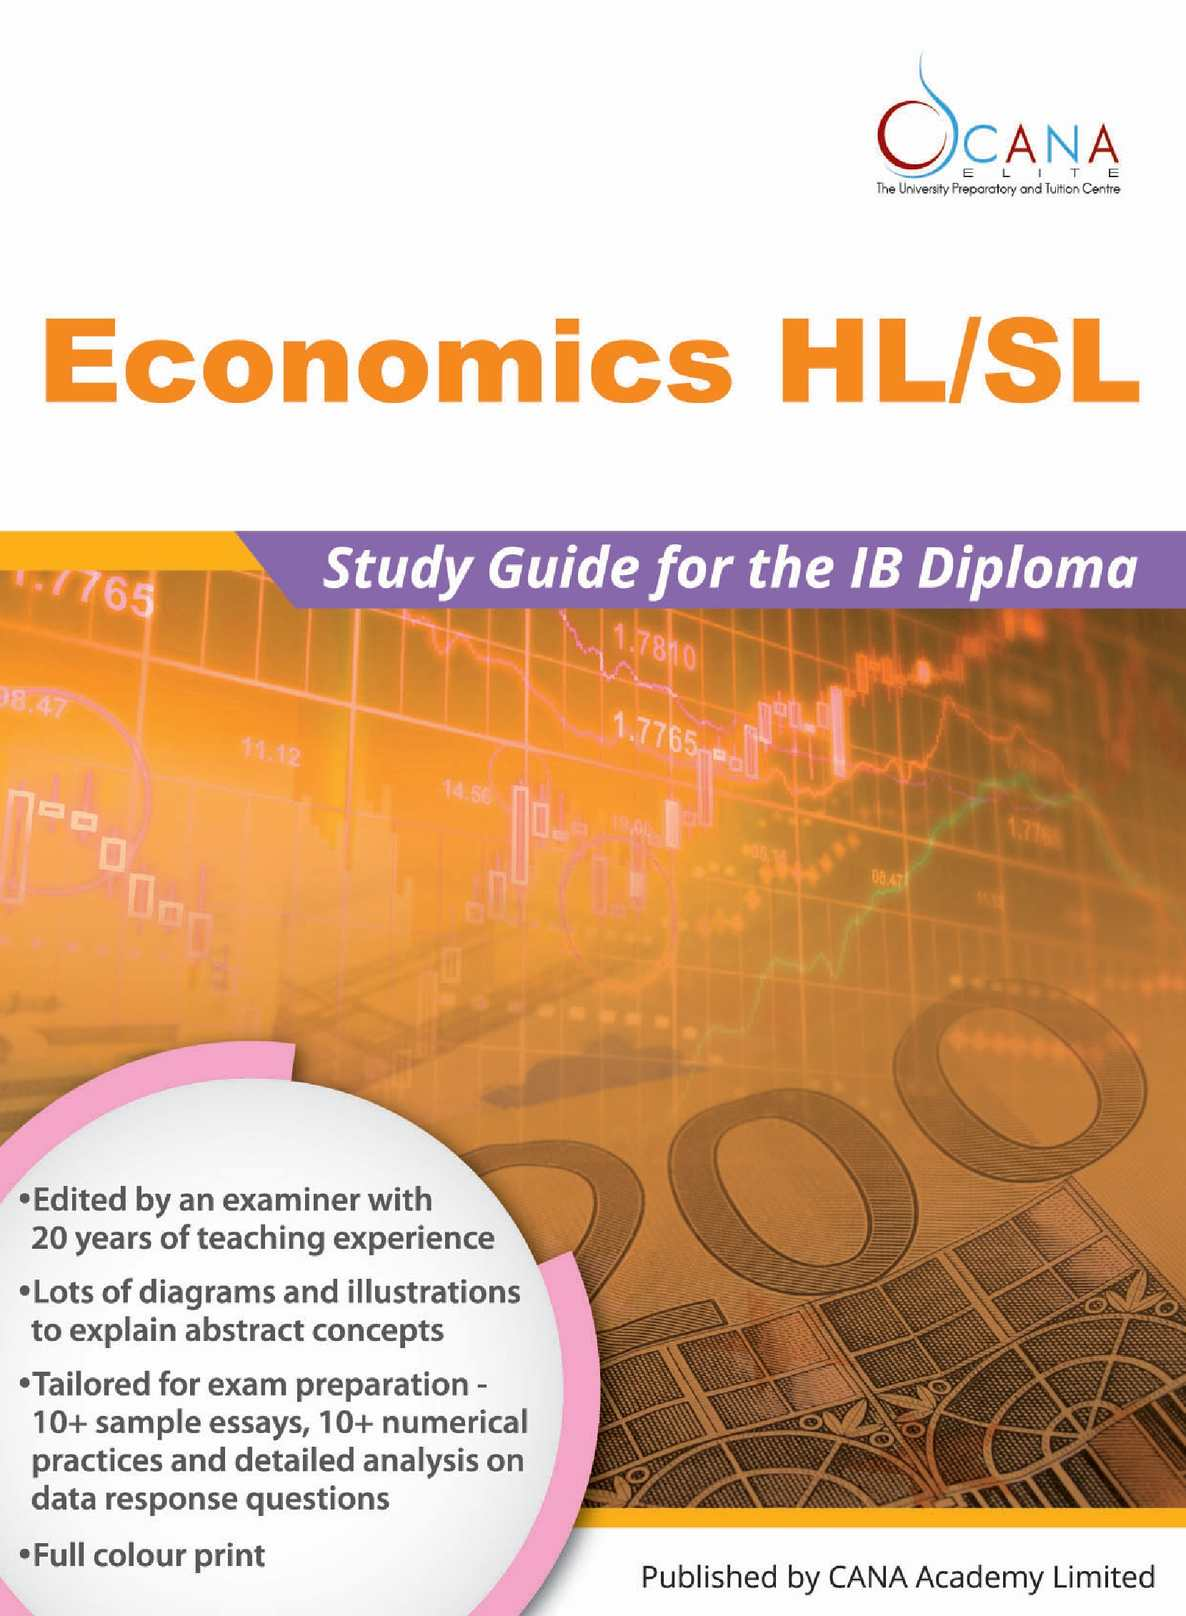 Cana Economics Study Guide (Preview)